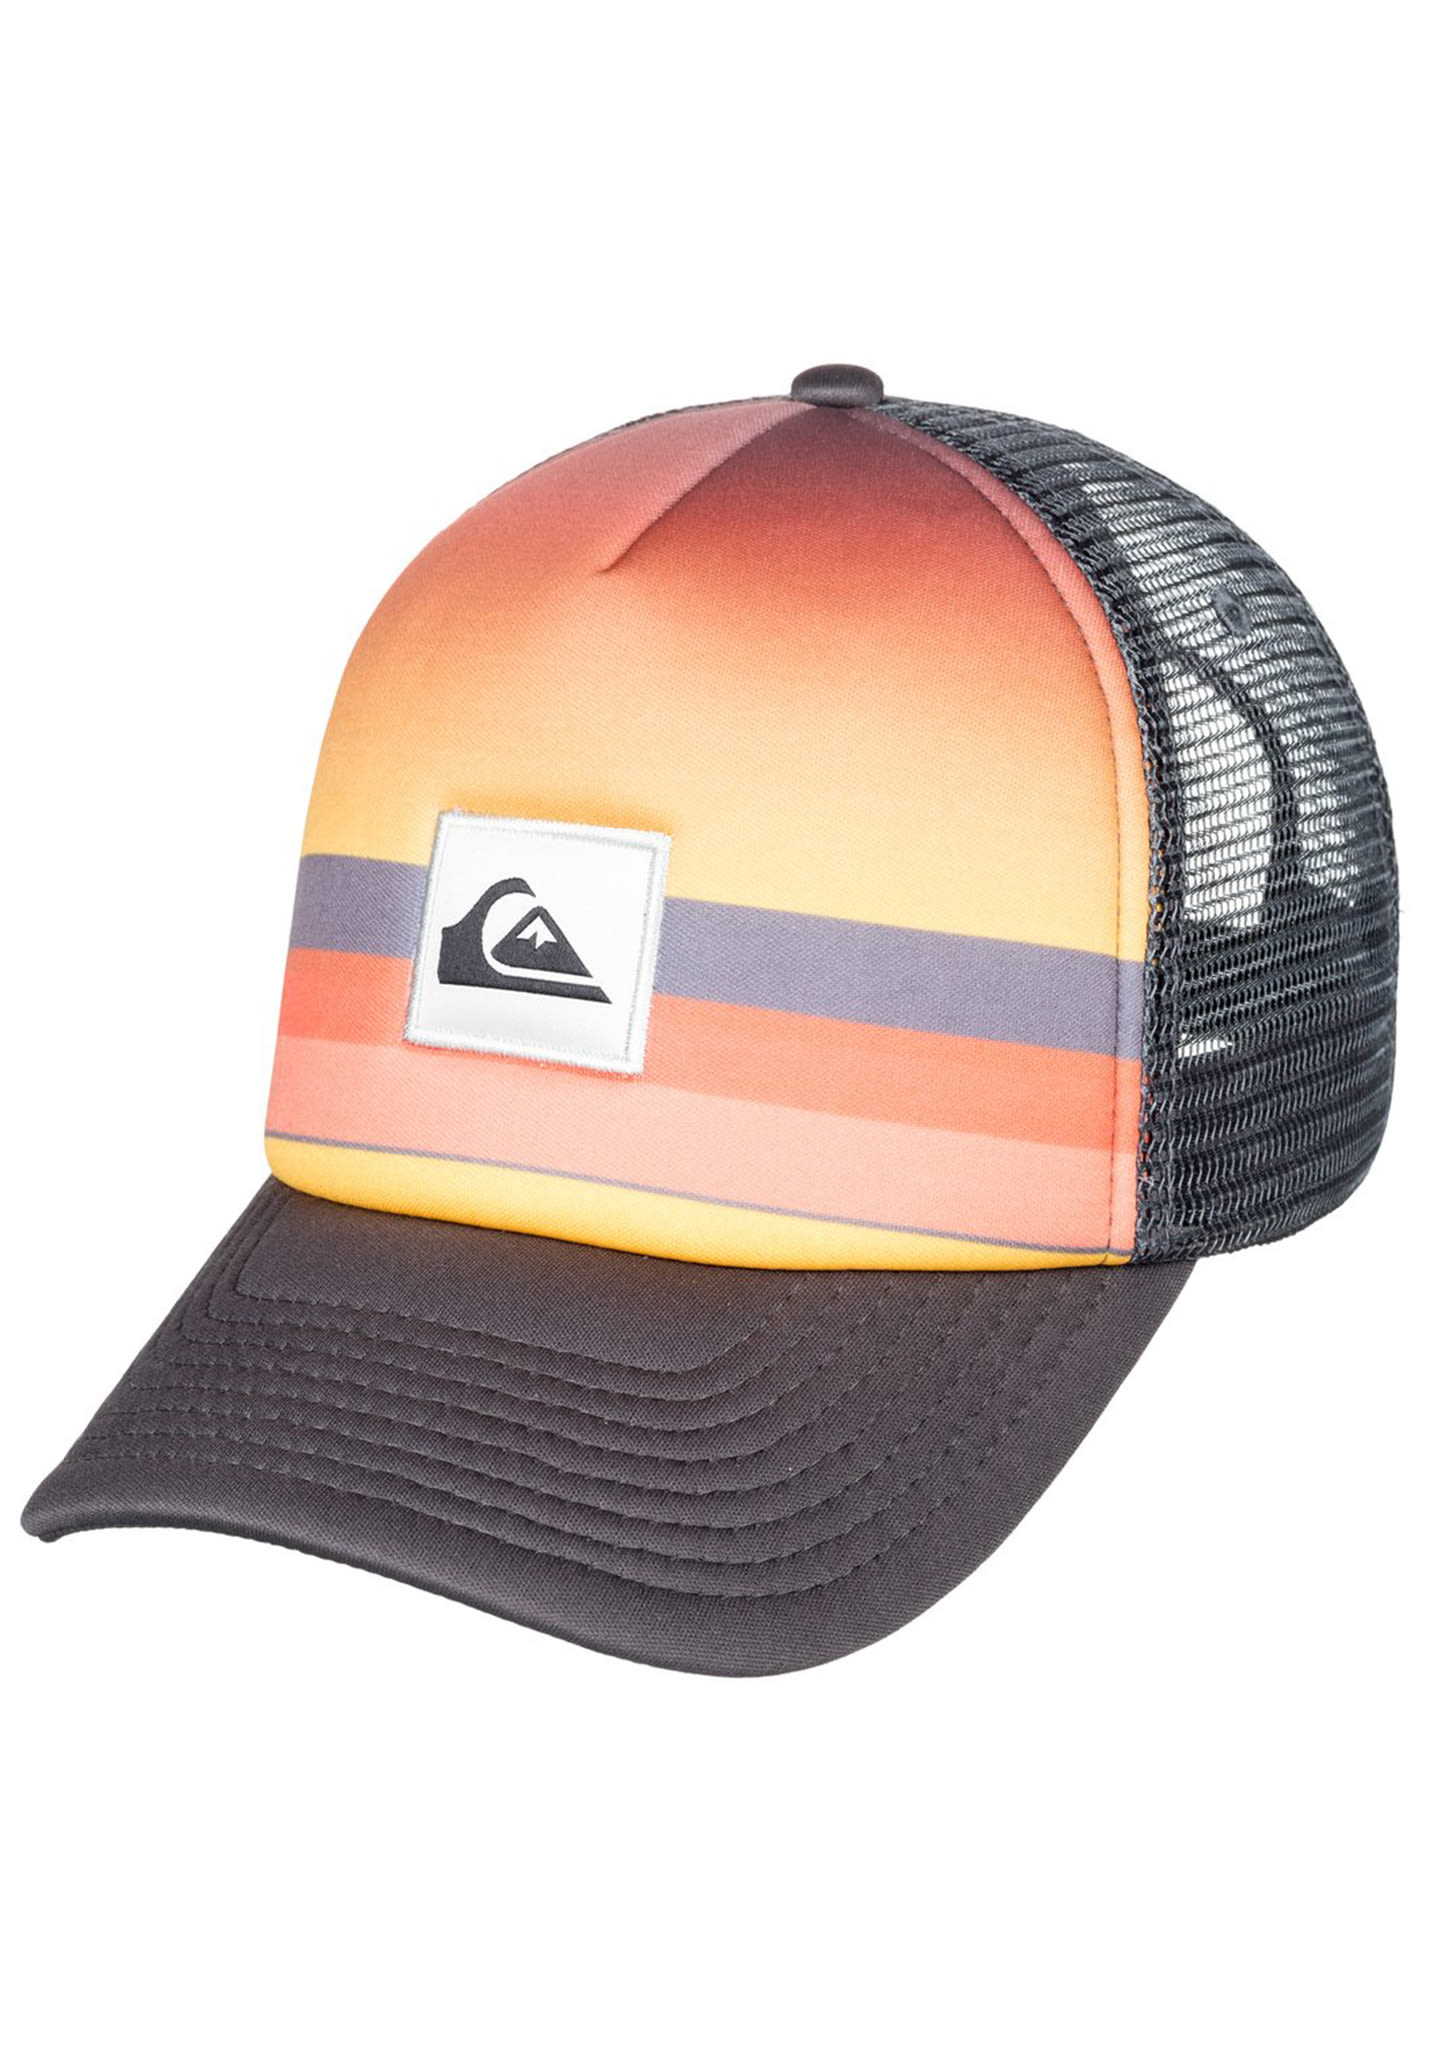 c8fee3f0f0b Quiksilver Sets Coming - Trucker Cap for Men - Yellow - Planet Sports